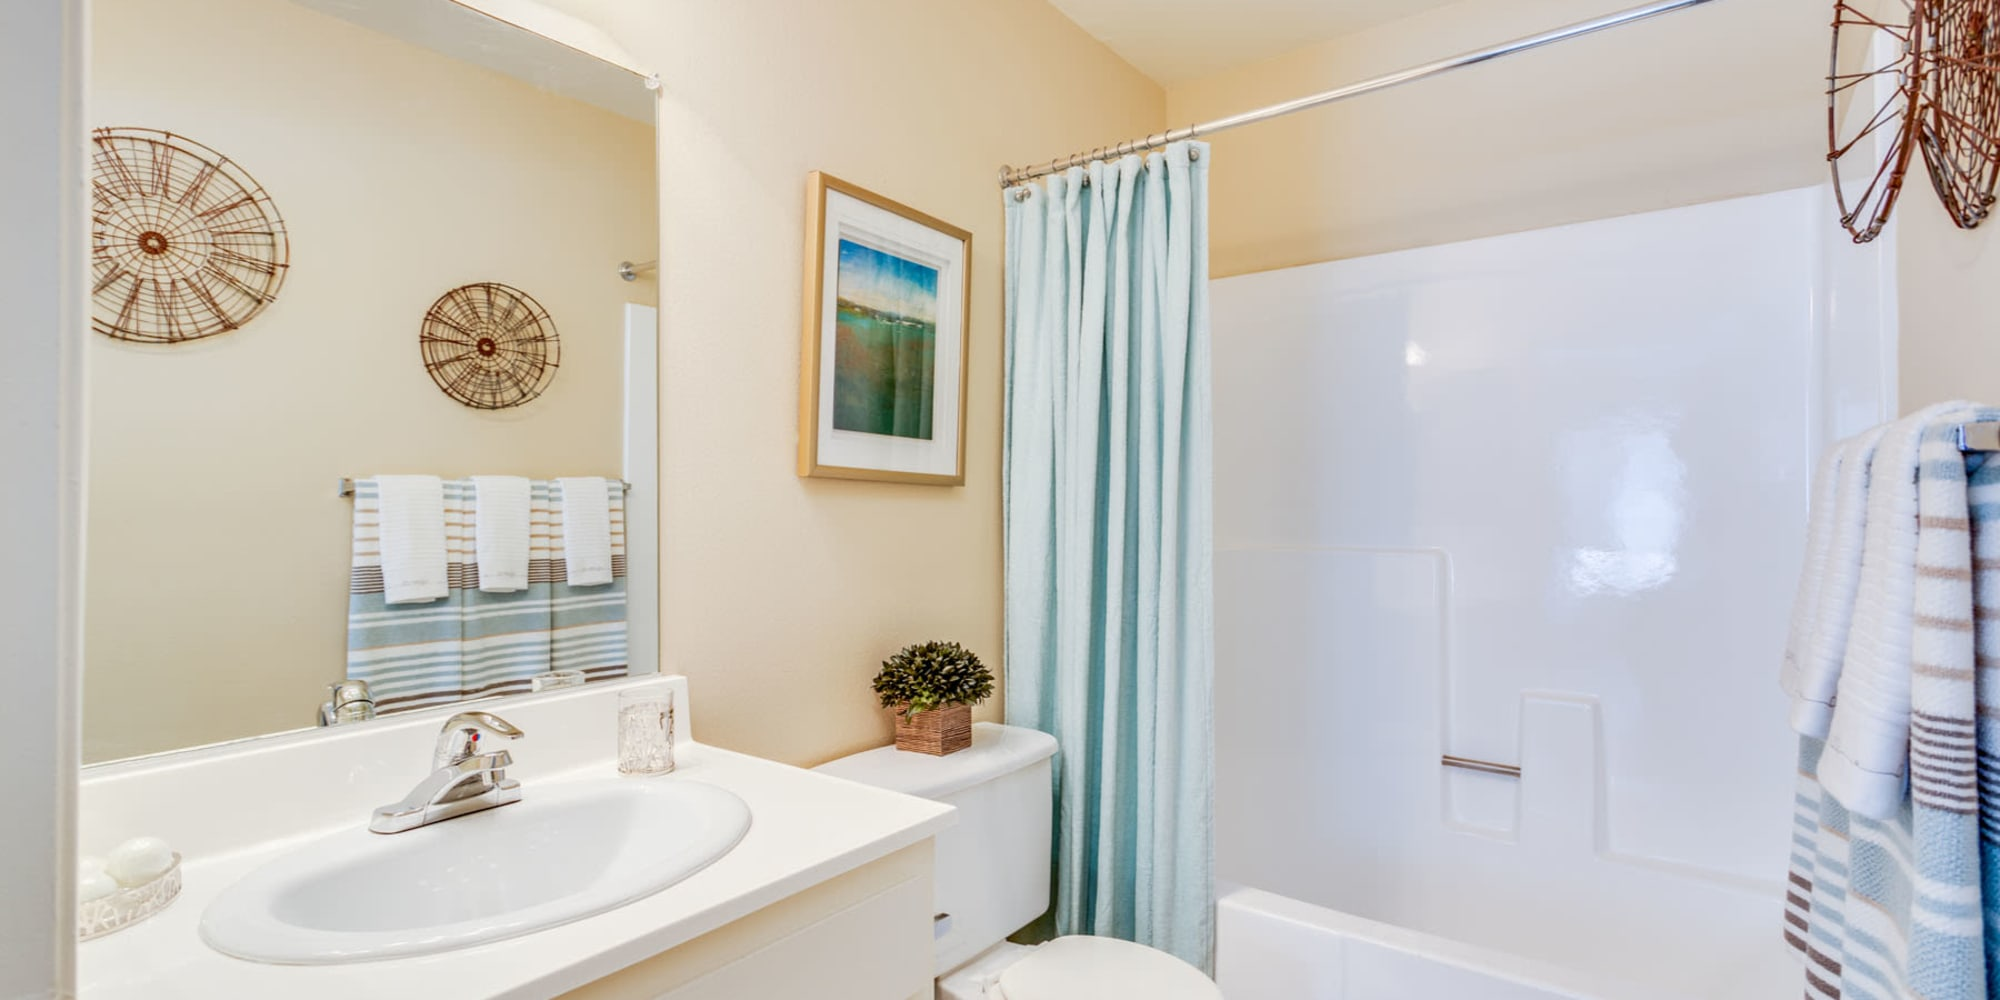 Tiled shower and a large vanity mirror in a model home at Mountain Vista in Victorville, California